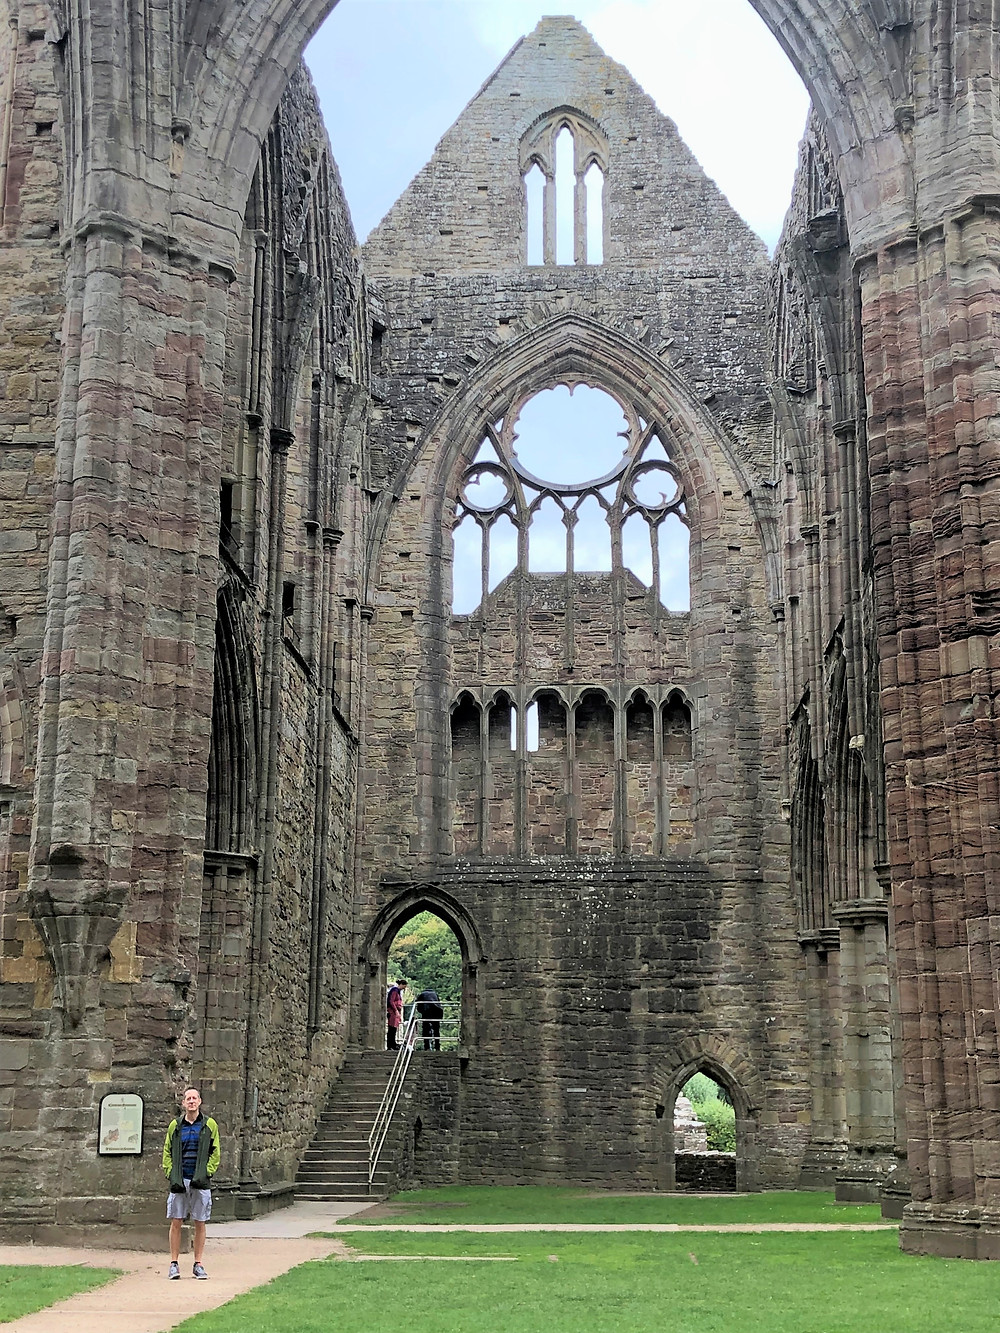 Soaring height of the north transept of Tintern Abbey in Southern Wales